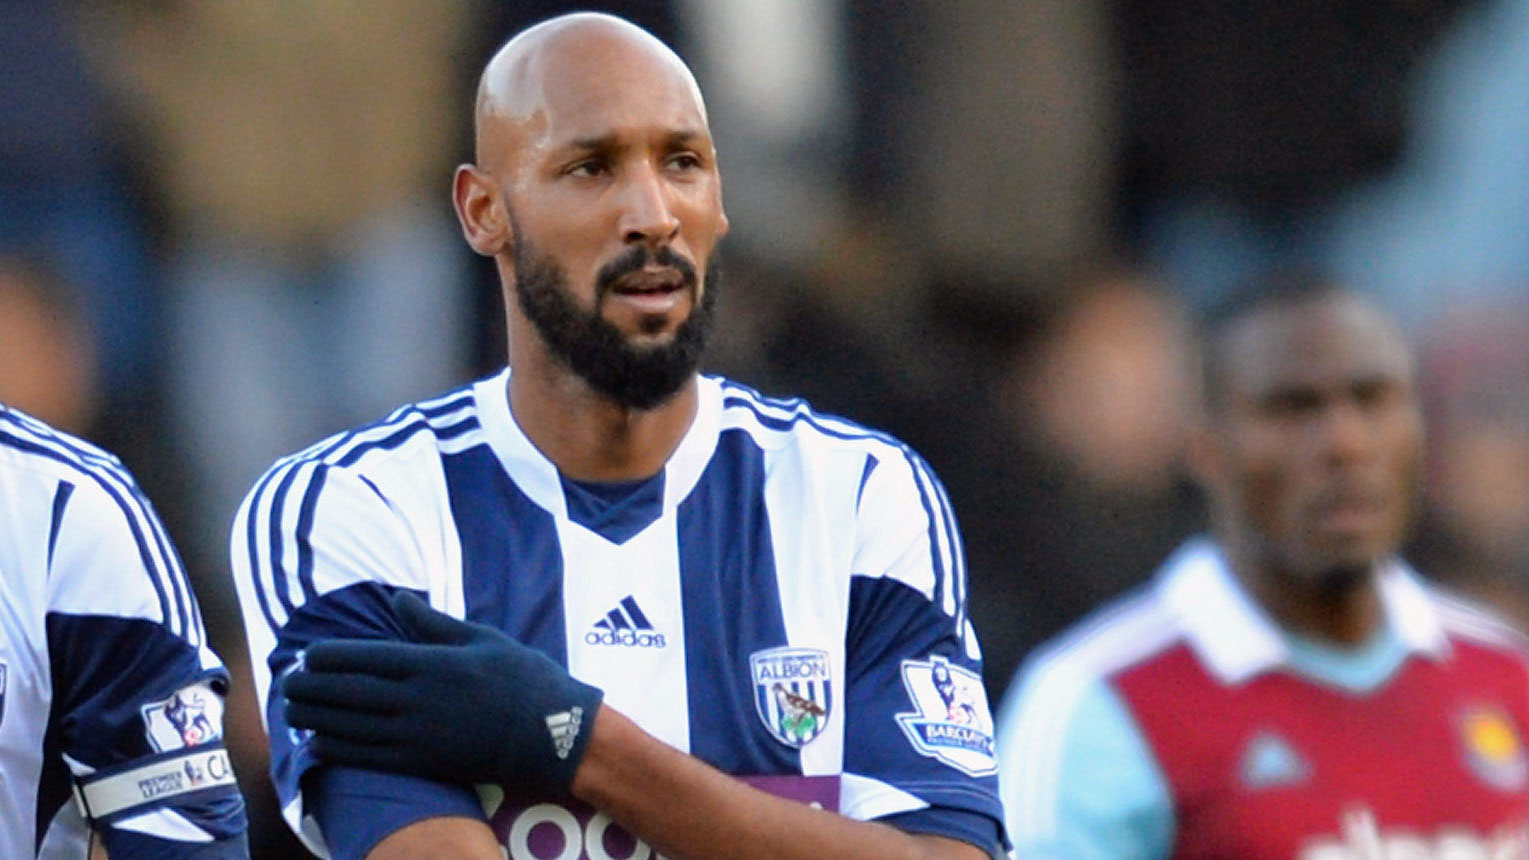 Anelka agrees not to use 'quenelle' gesture – Channel 4 News